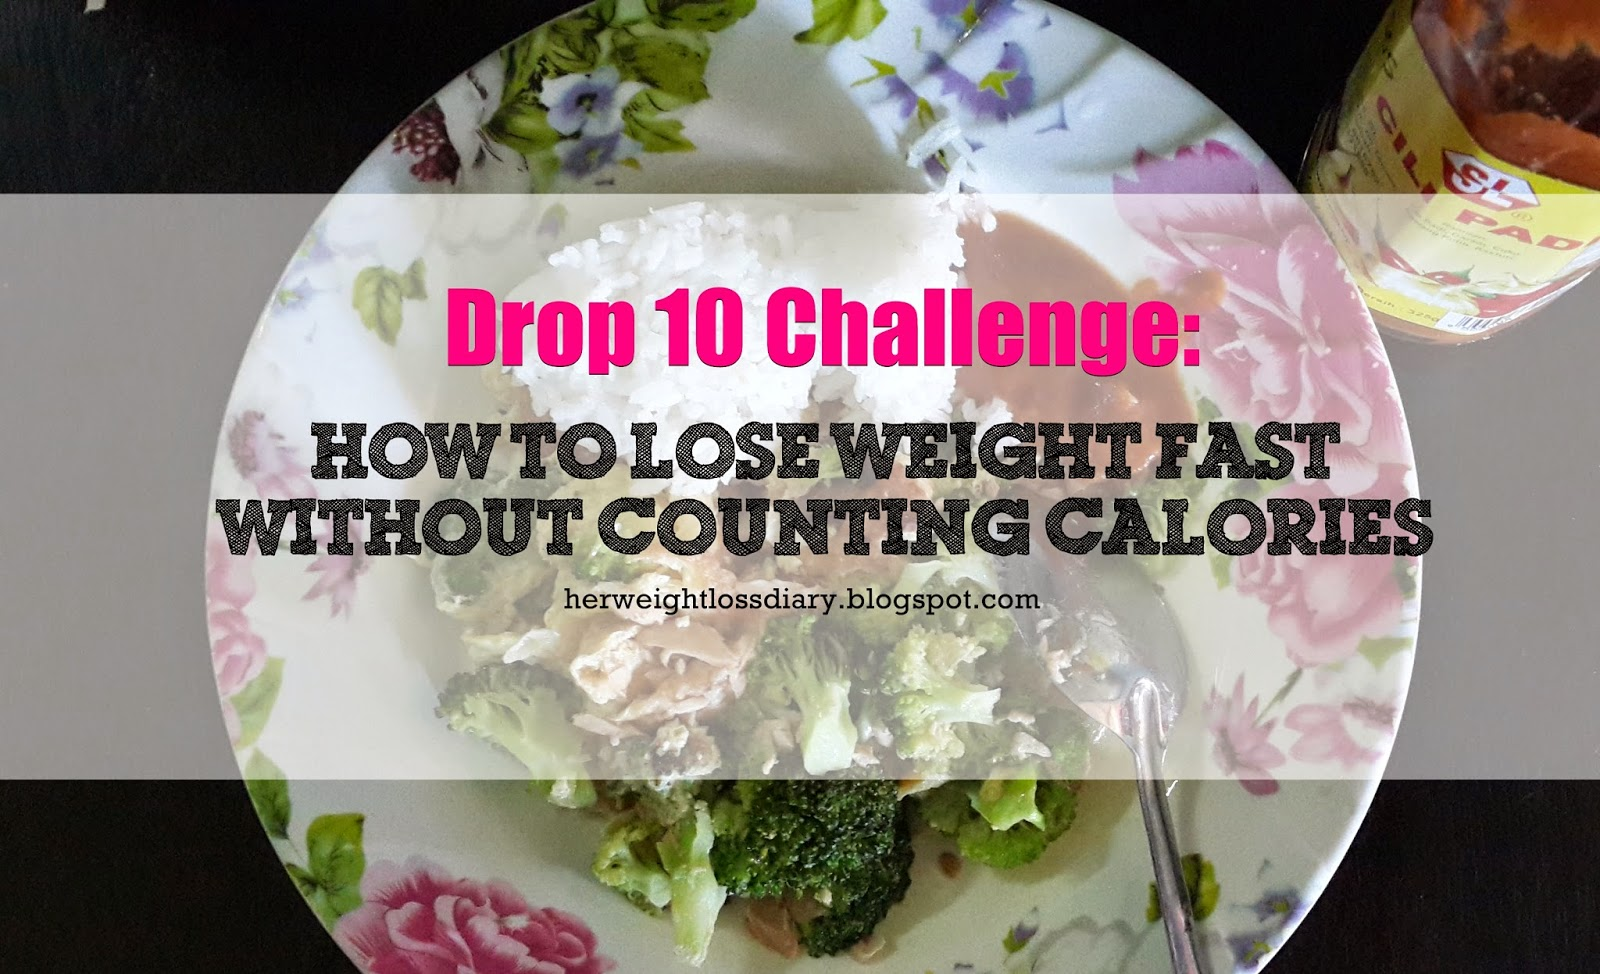 Drop 10 Weight Loss Challenge, Lose Weight Without Counting Calories